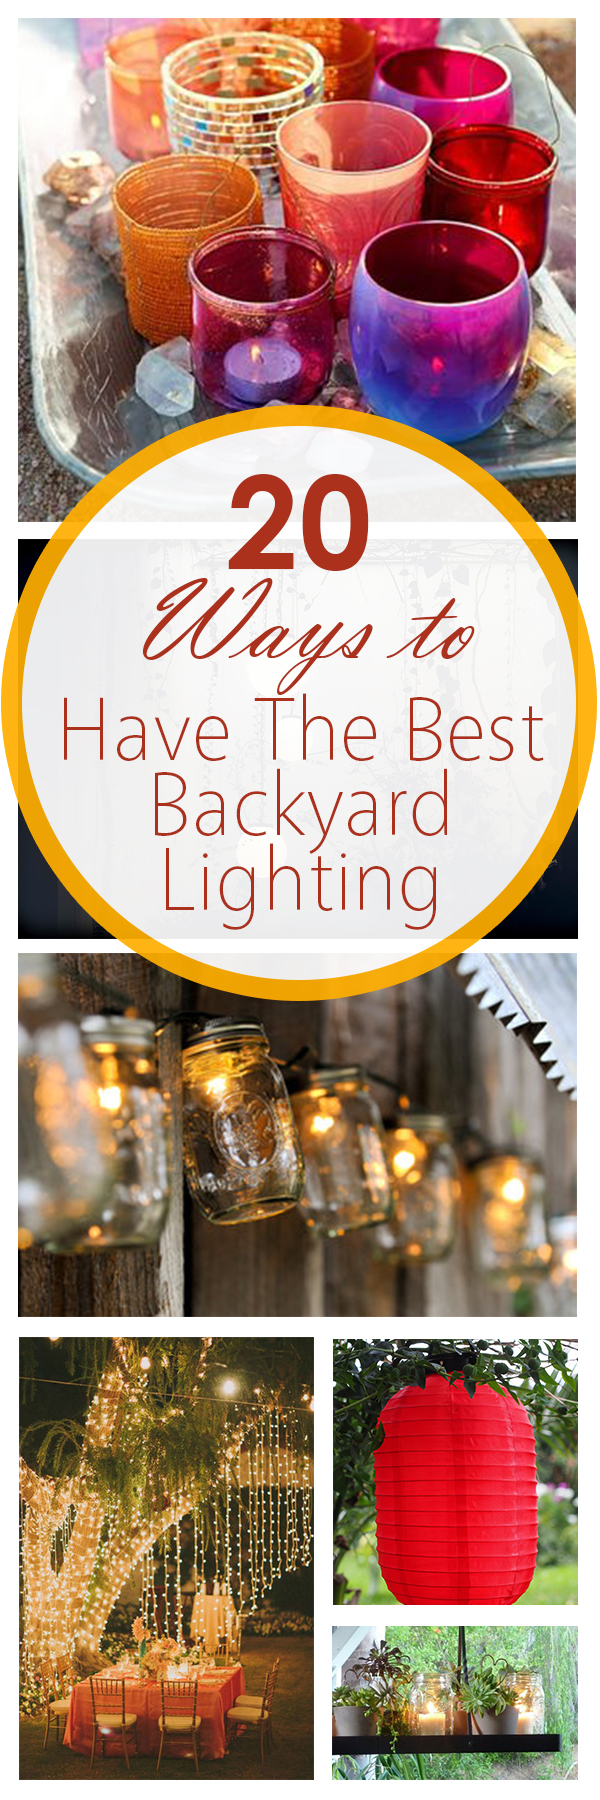 20 Ways to Have The Best Backyard Lighting (1)